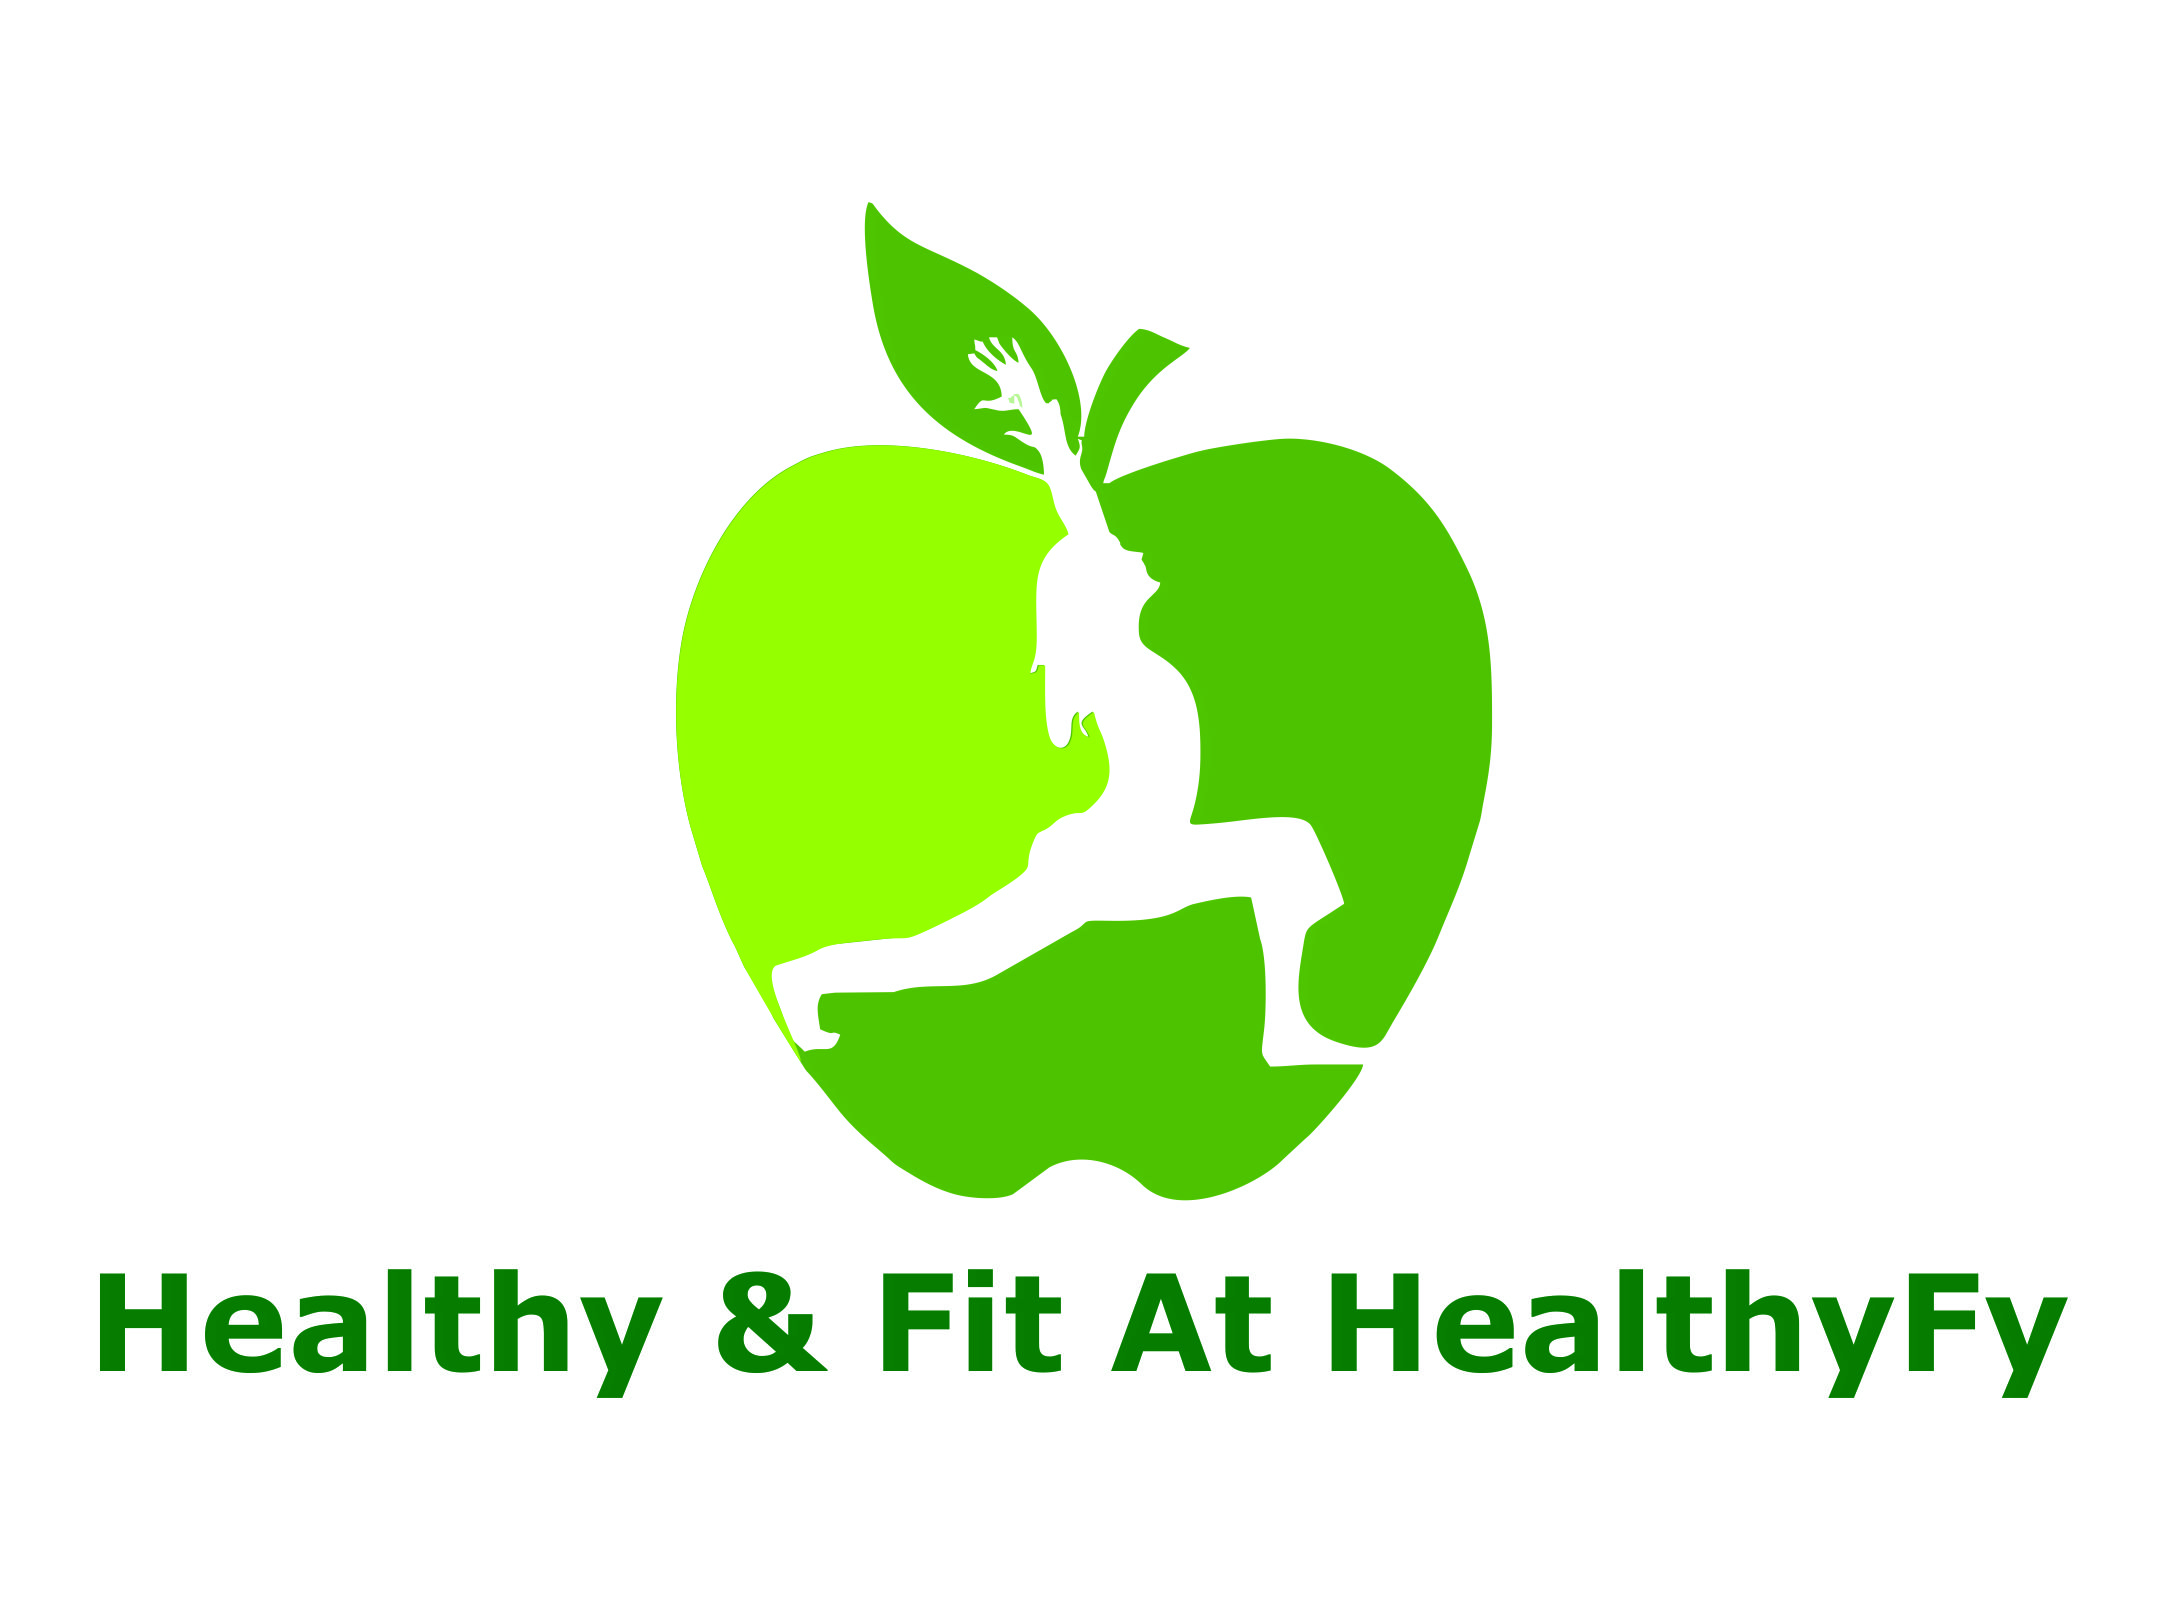 Healthyfy Nutrition Centre Diet And Wellness Clinic